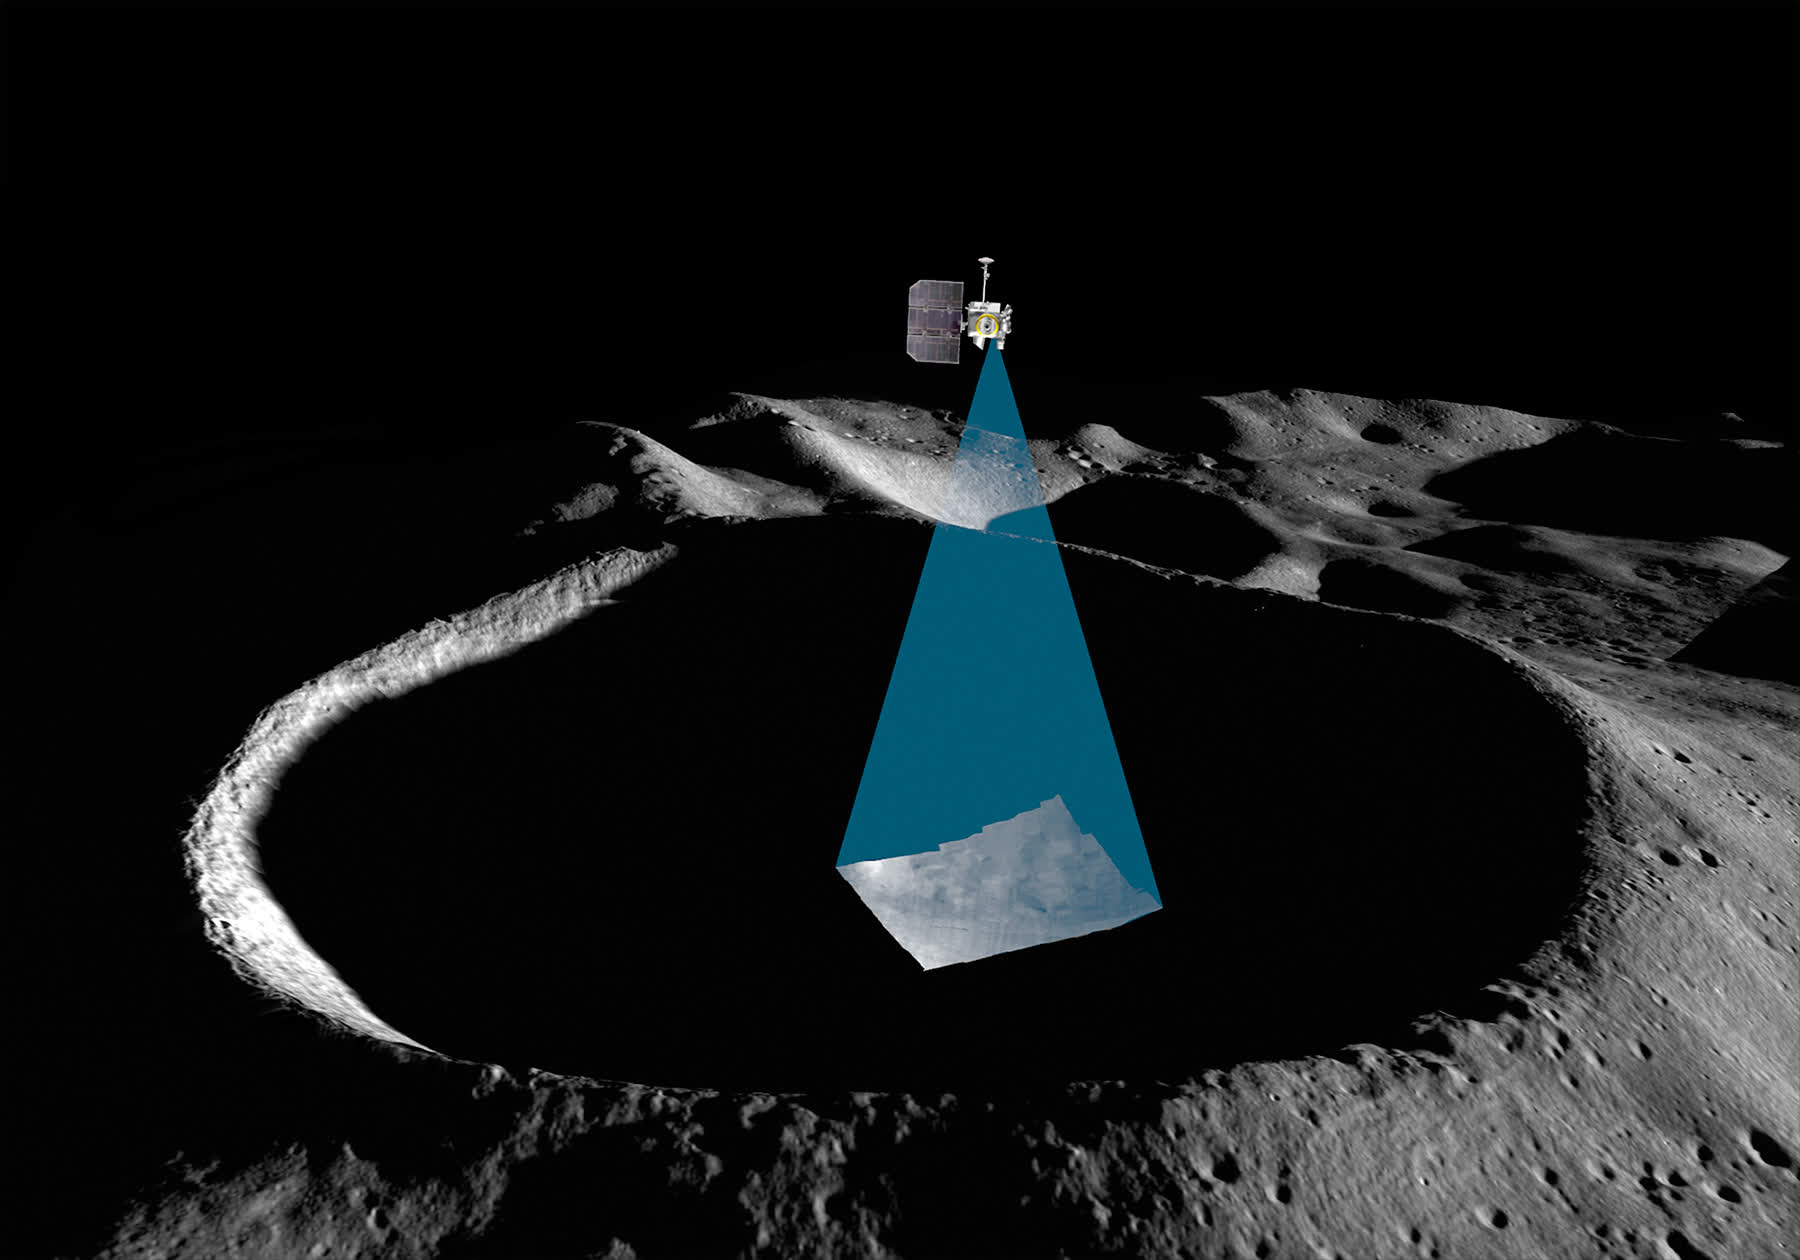 South Korea's first lunar expedition is on track for August 2022 launch